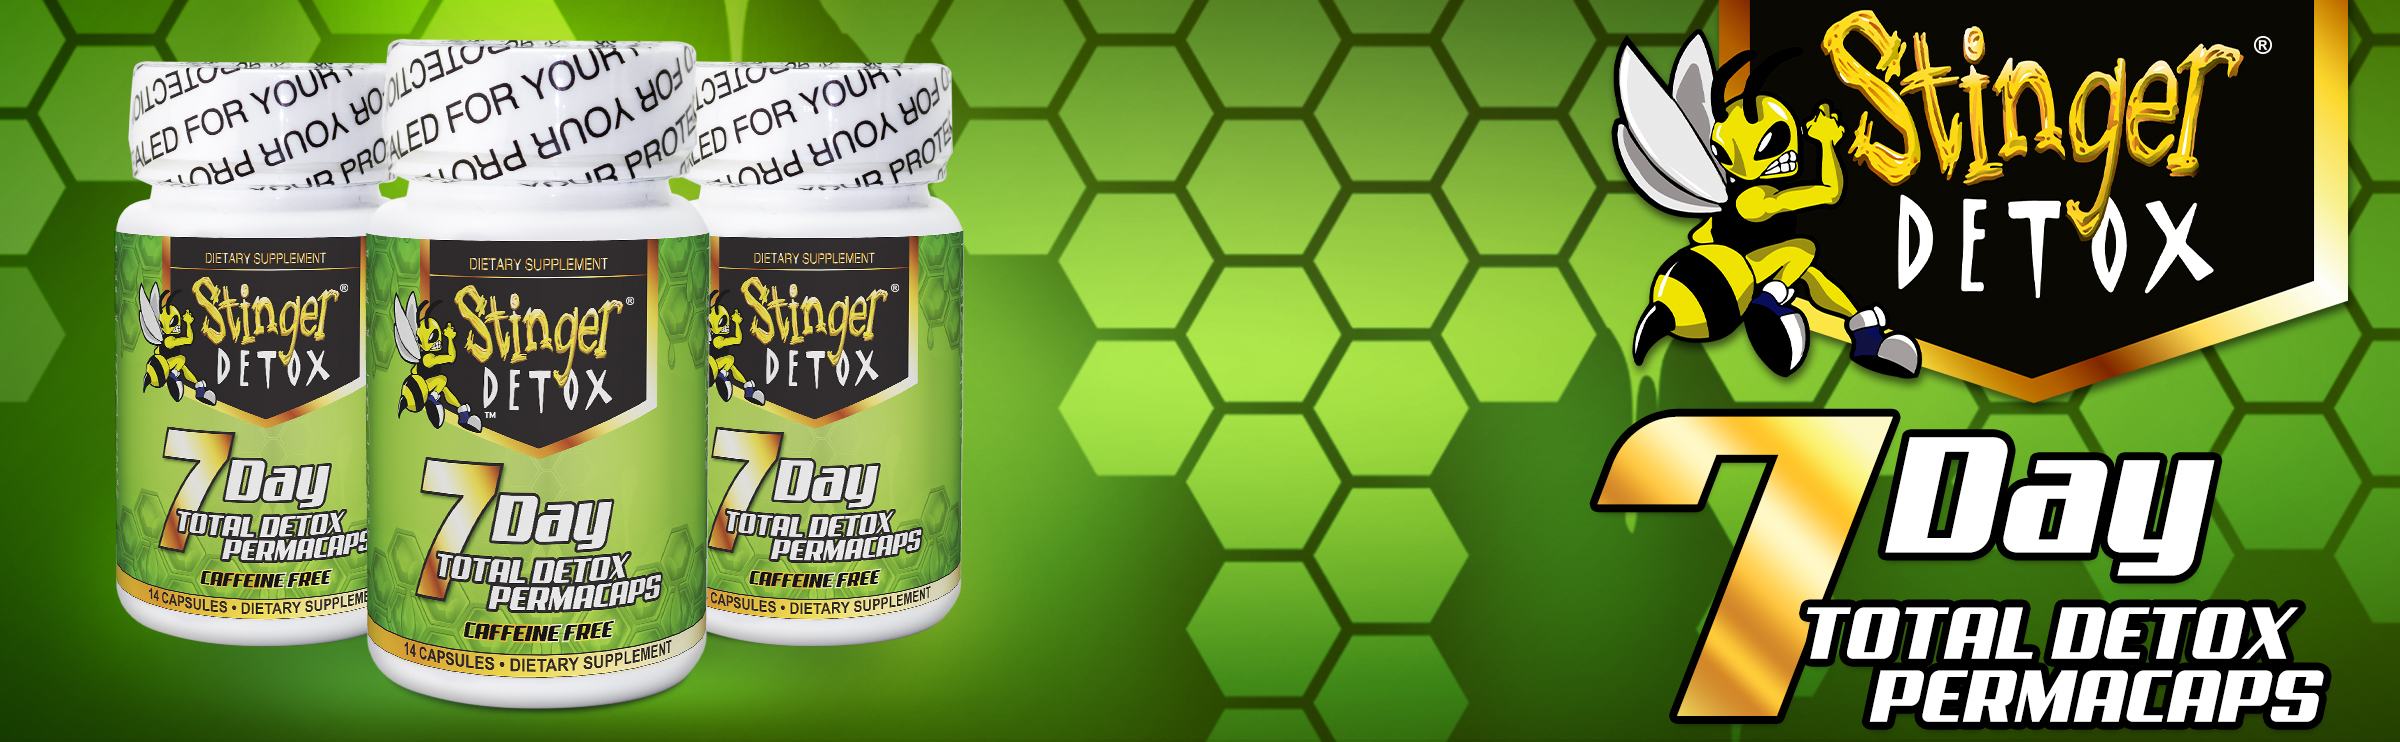 7-day-capsules-product-page-registered-2021.jpg